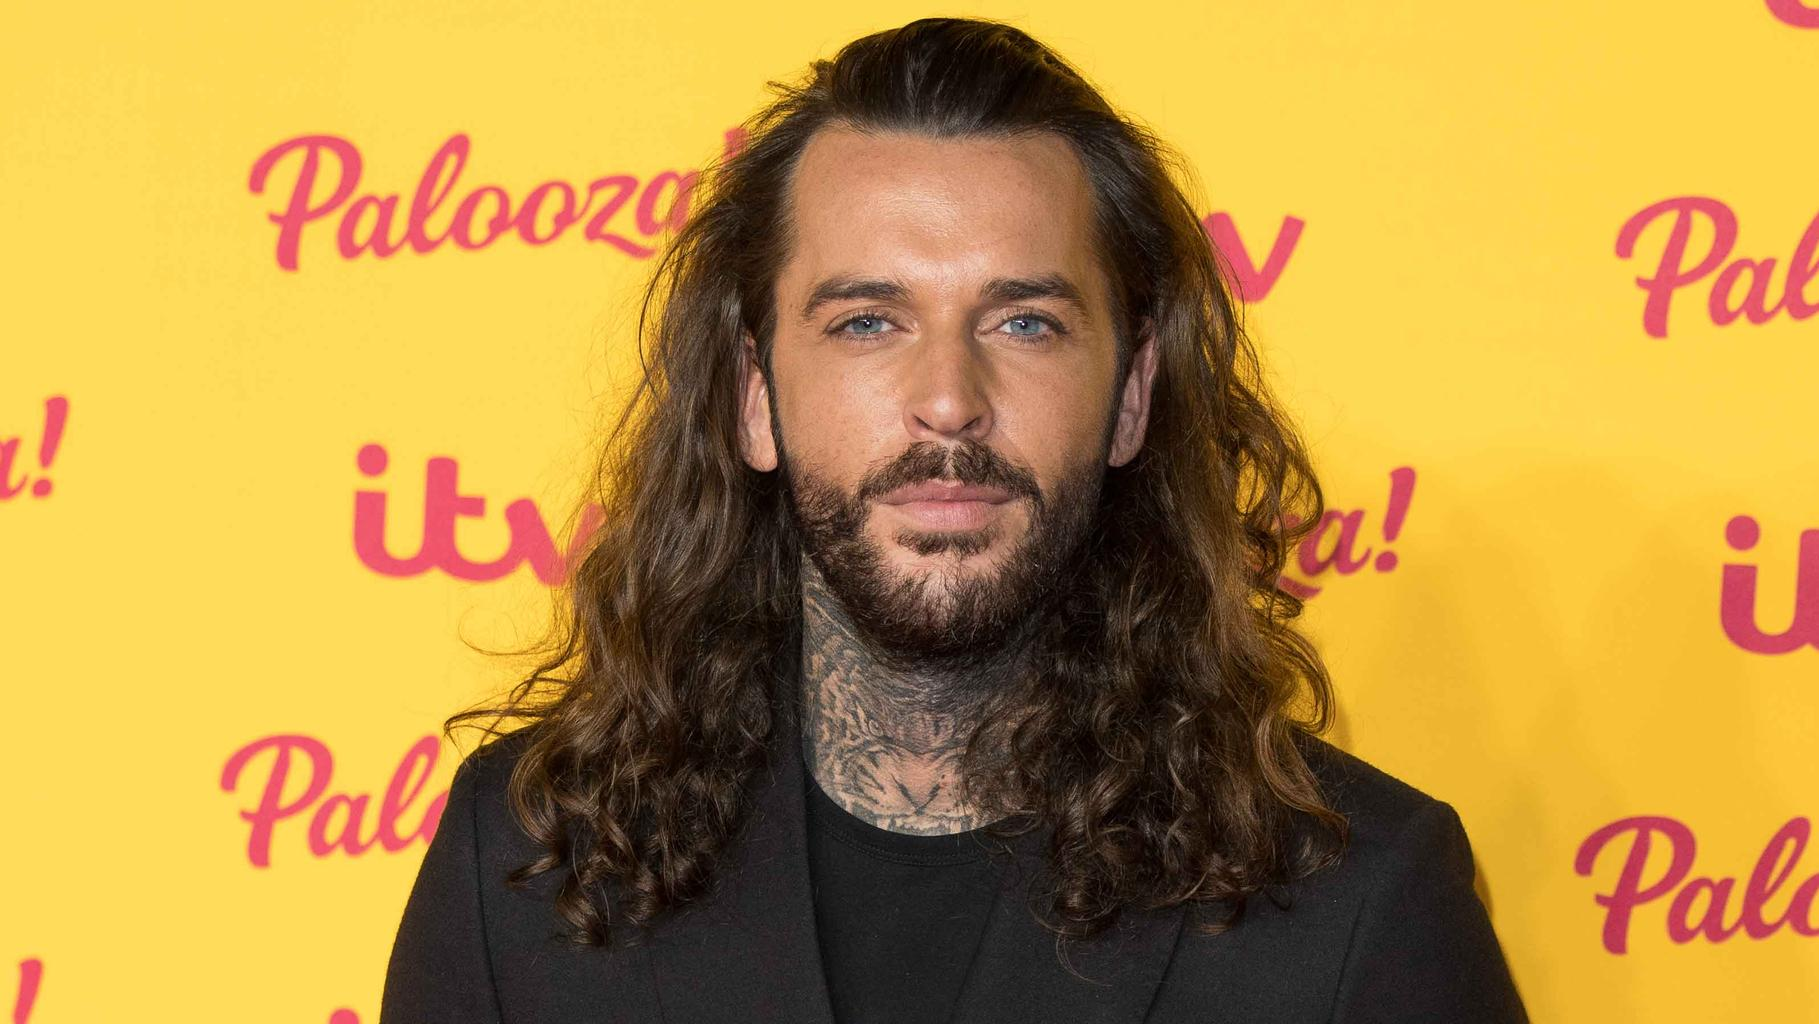 TOWIE's Pete Wicks looks so different with a shaved head